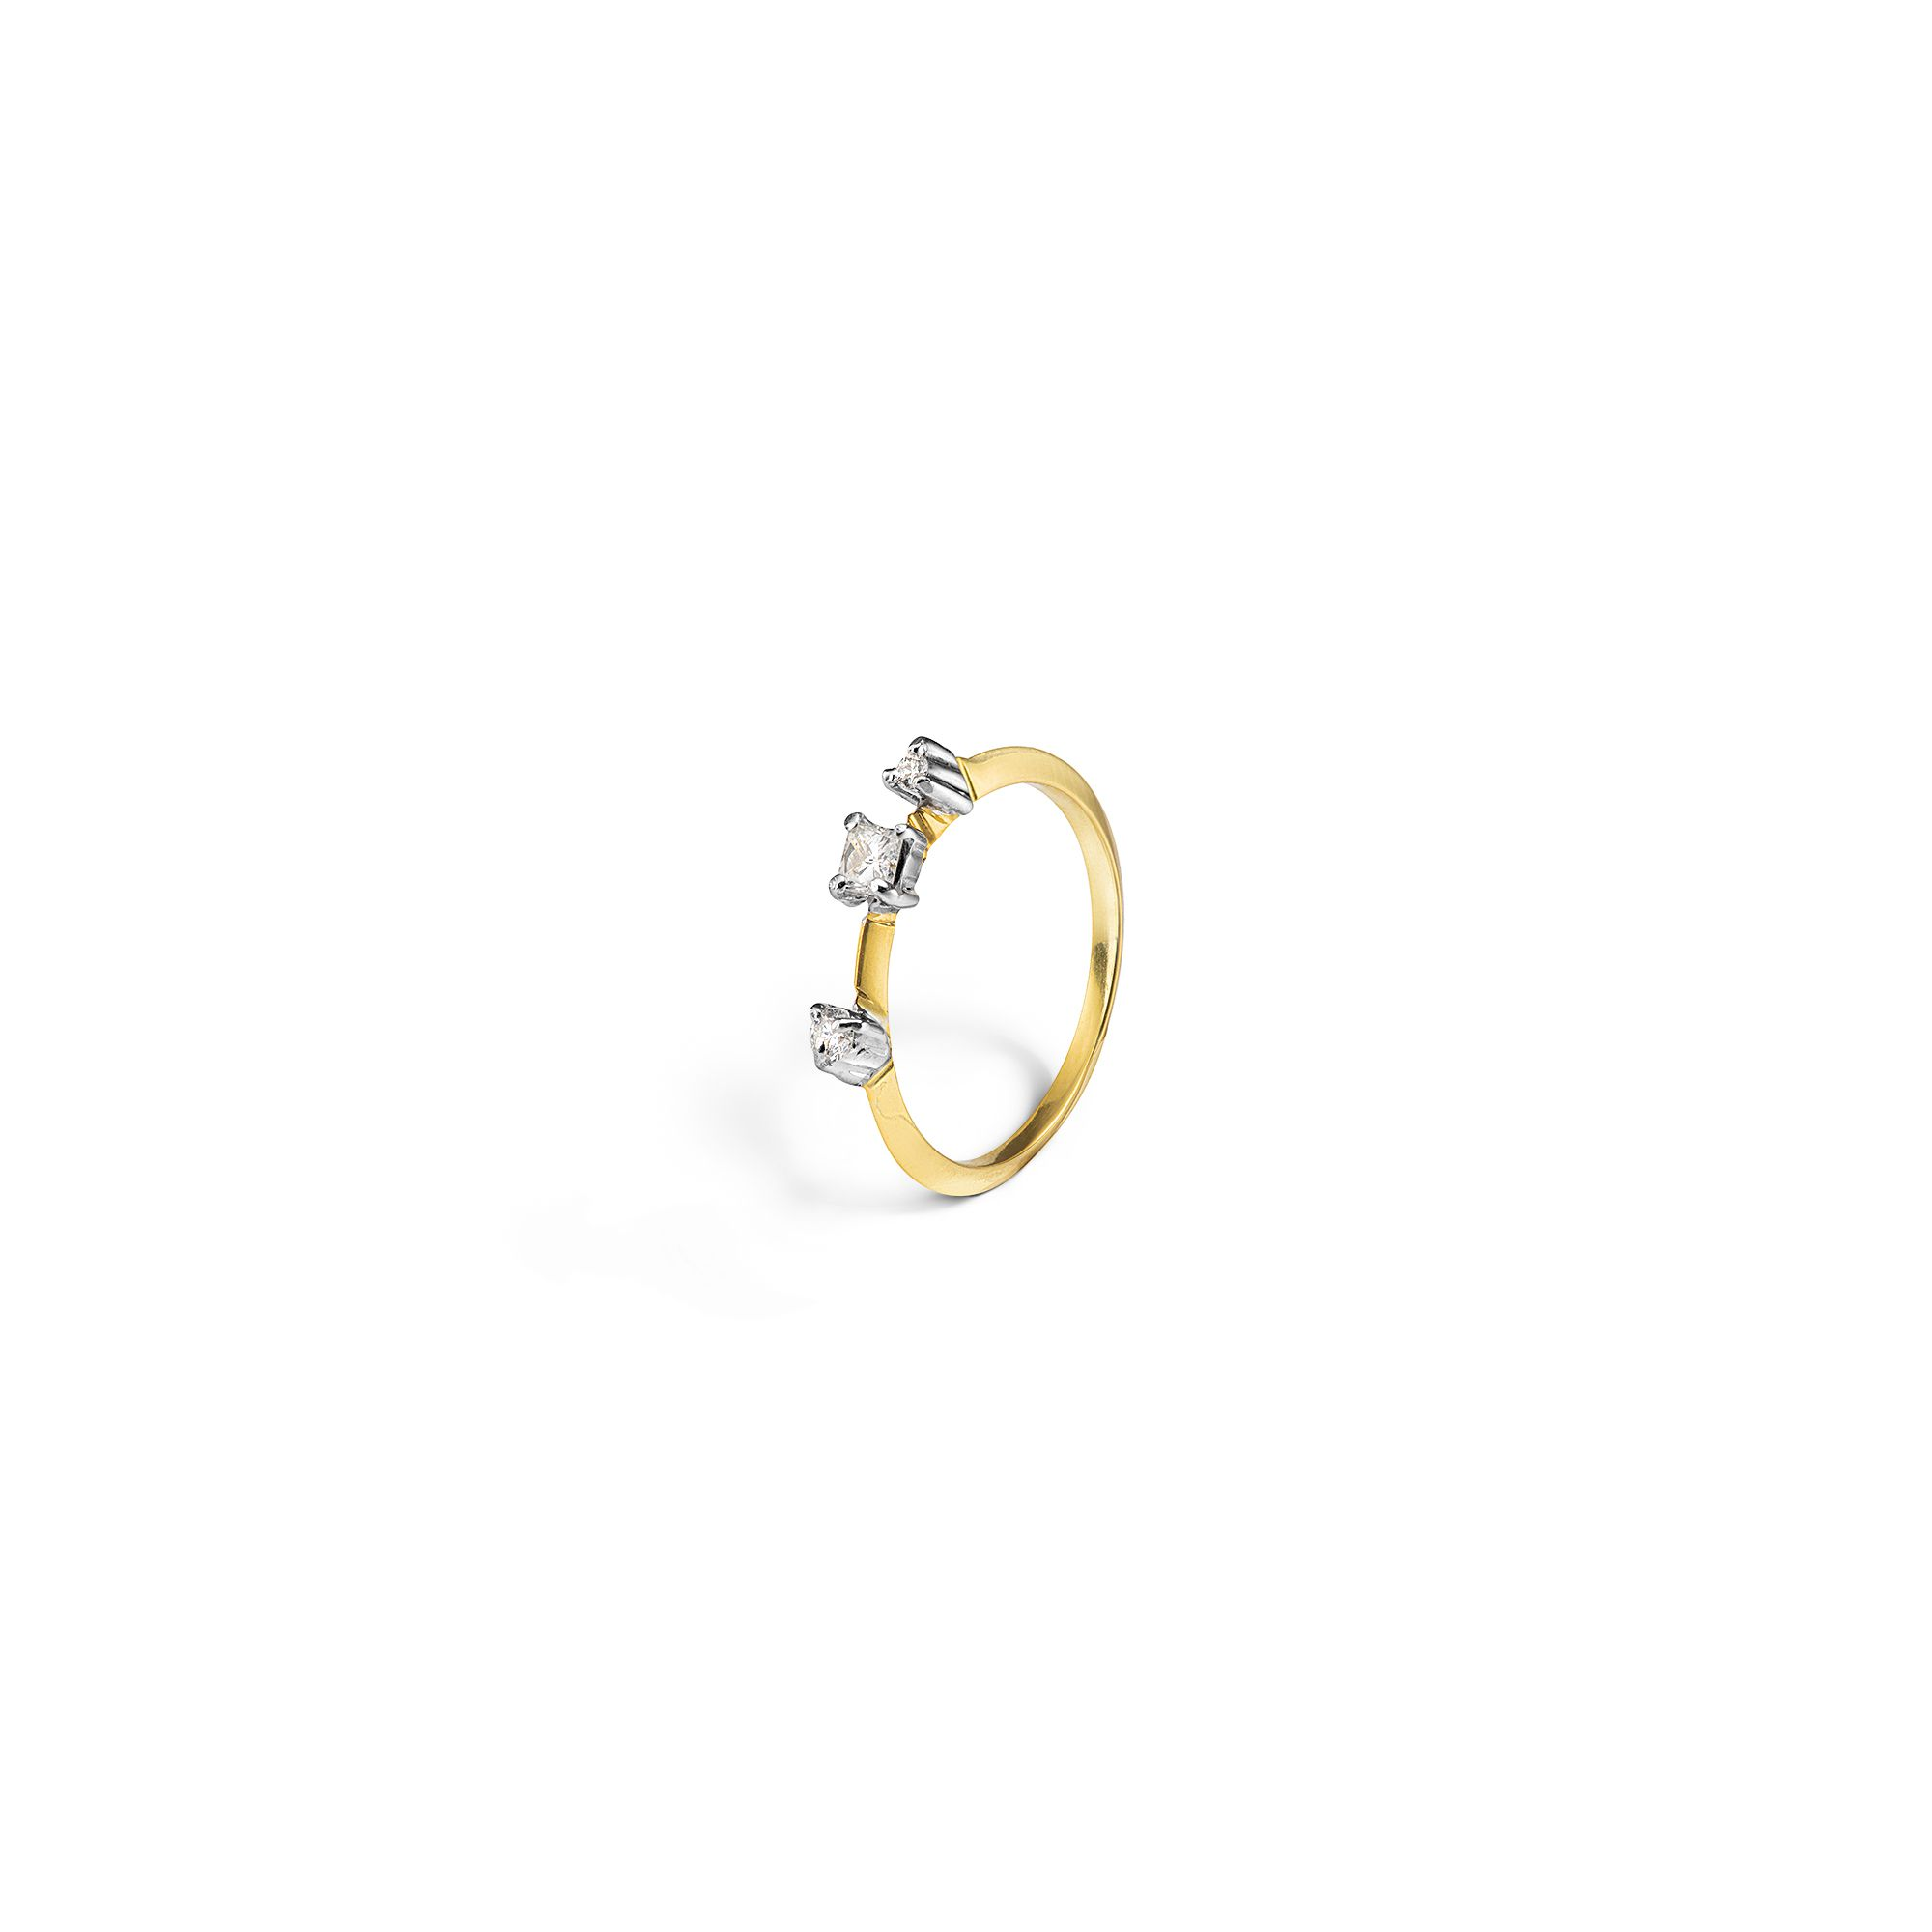 Yellow gold 'Balance' ring Ring in yellow gold and white diamonds